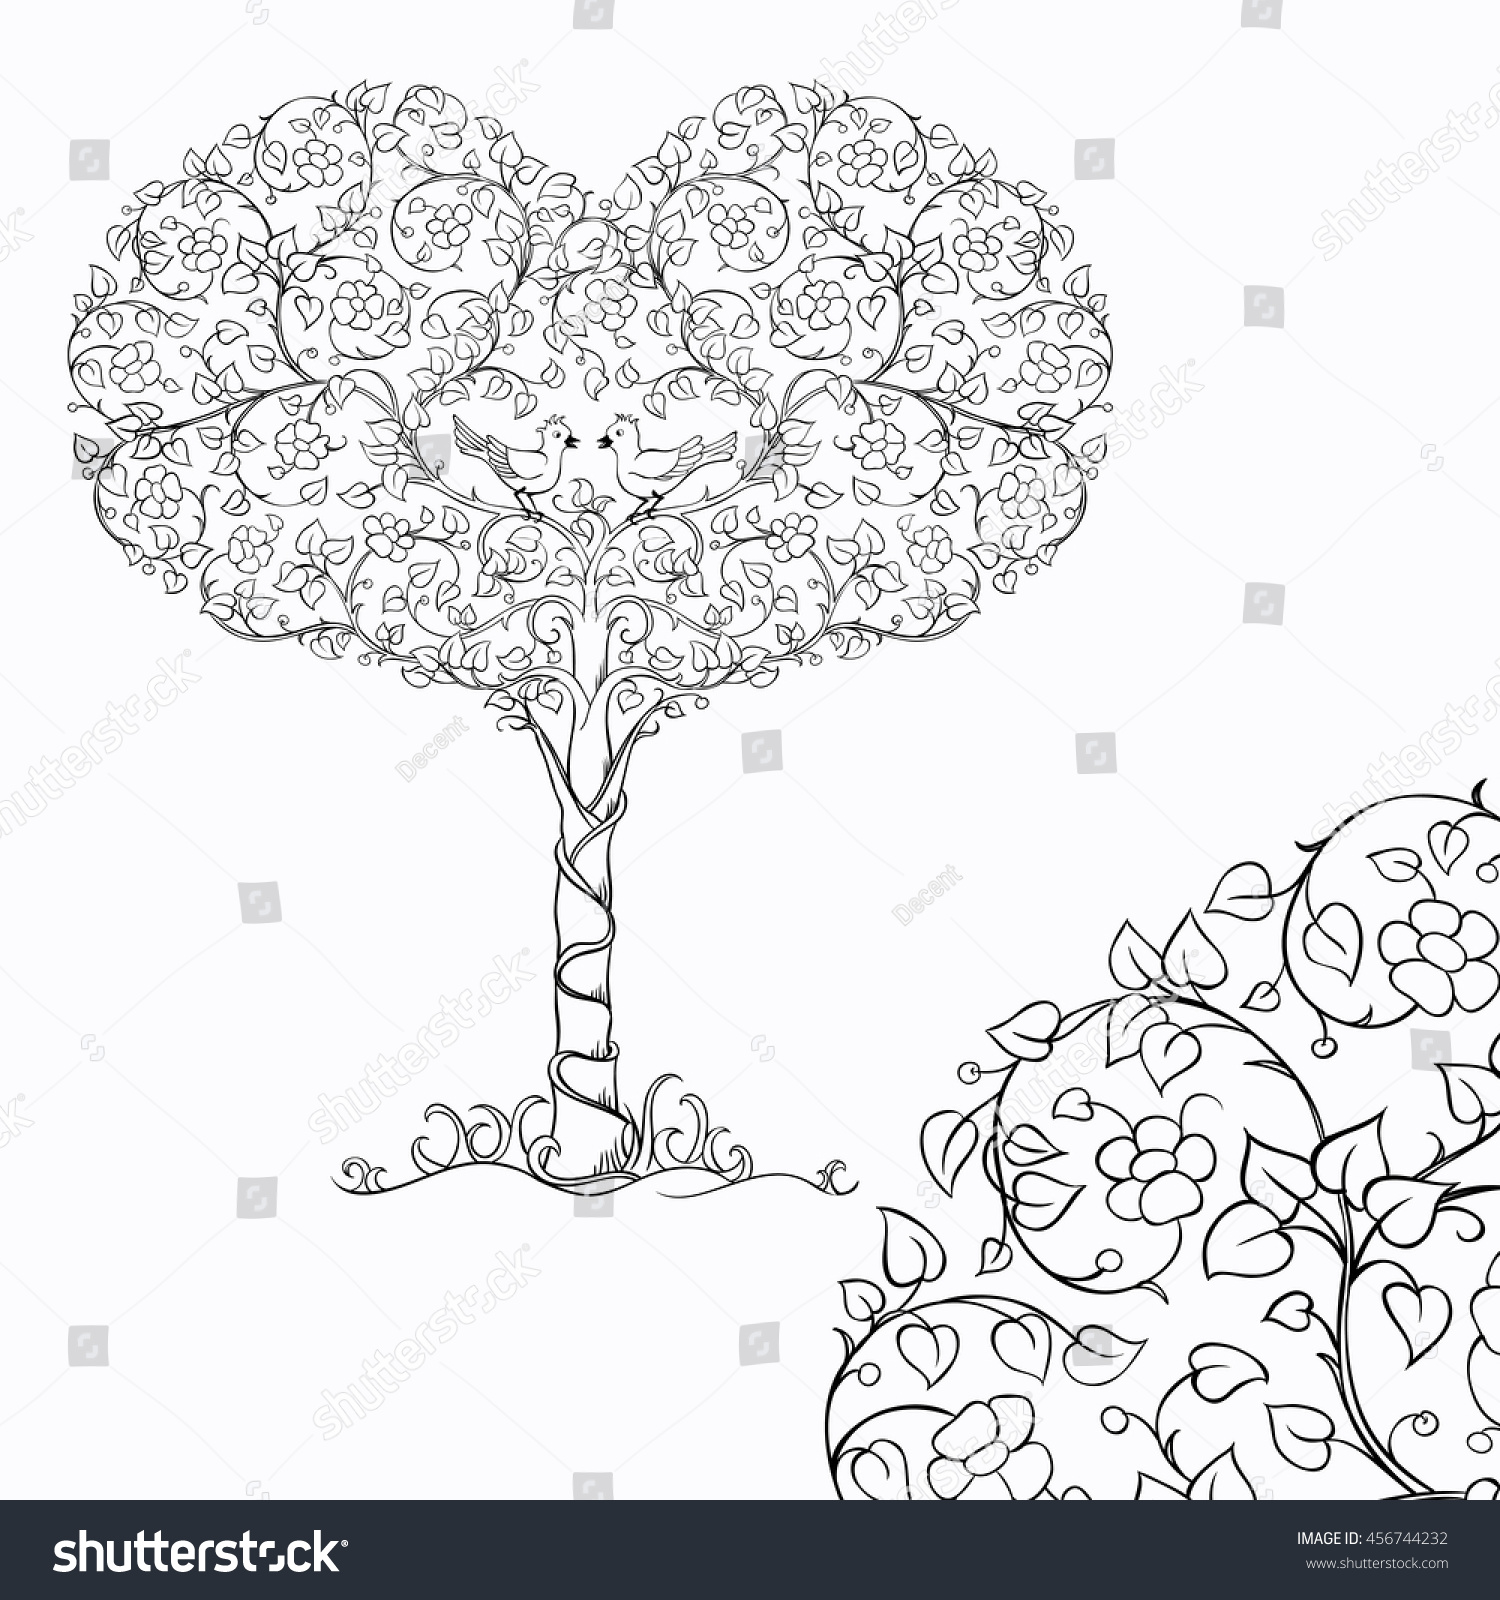 pair birds crown heart tree sketch stock vector 456744232